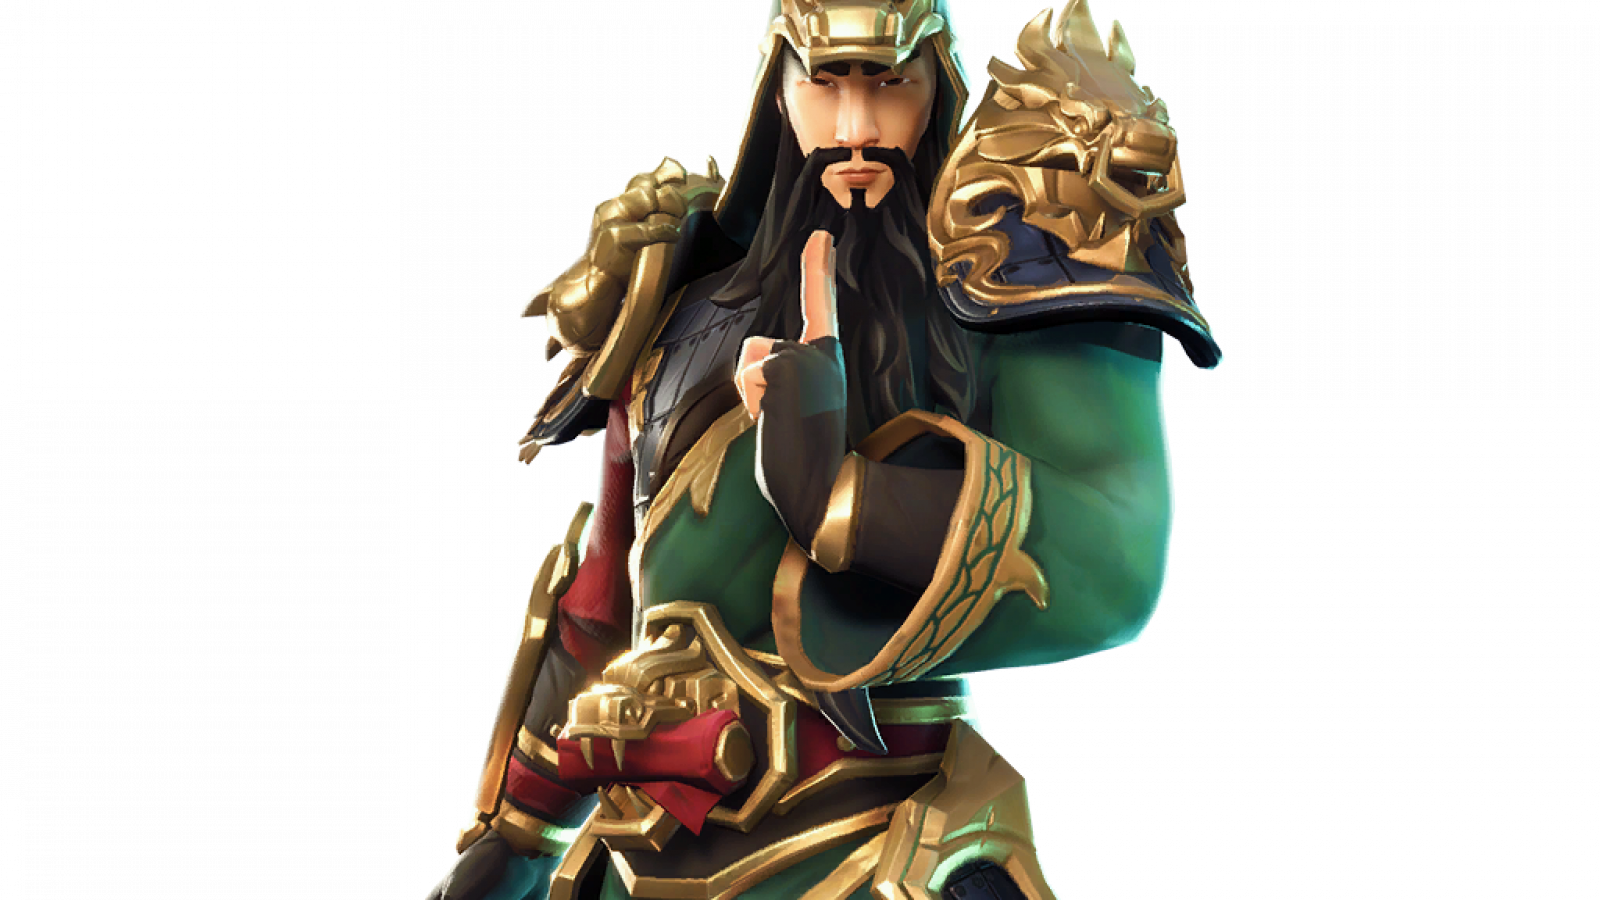 Fortnite' Patch 6 10 Leaked Skins: Spiders and Guan Yu